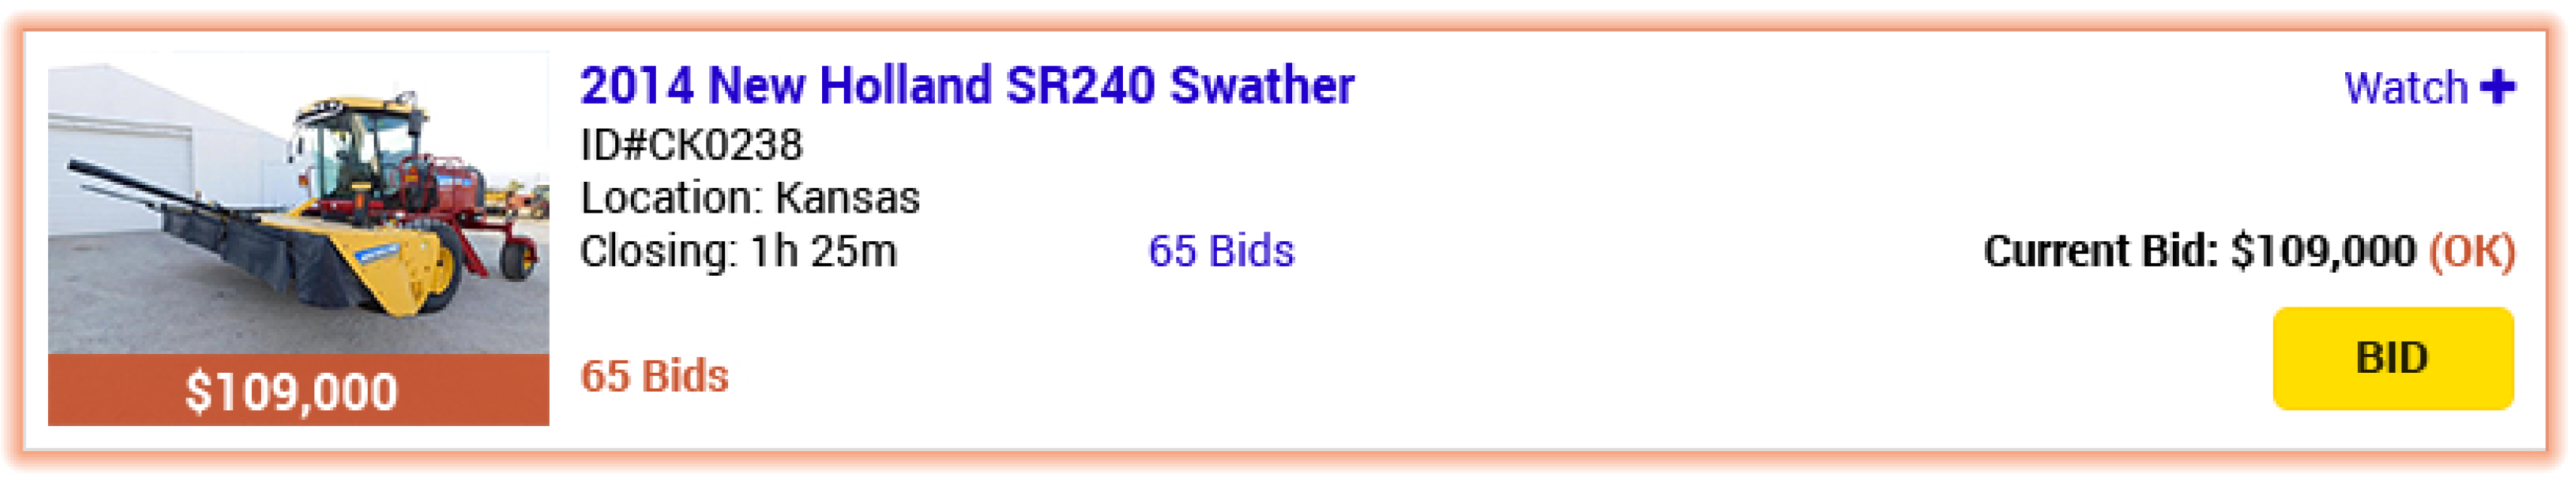 Outbid indicators show in red